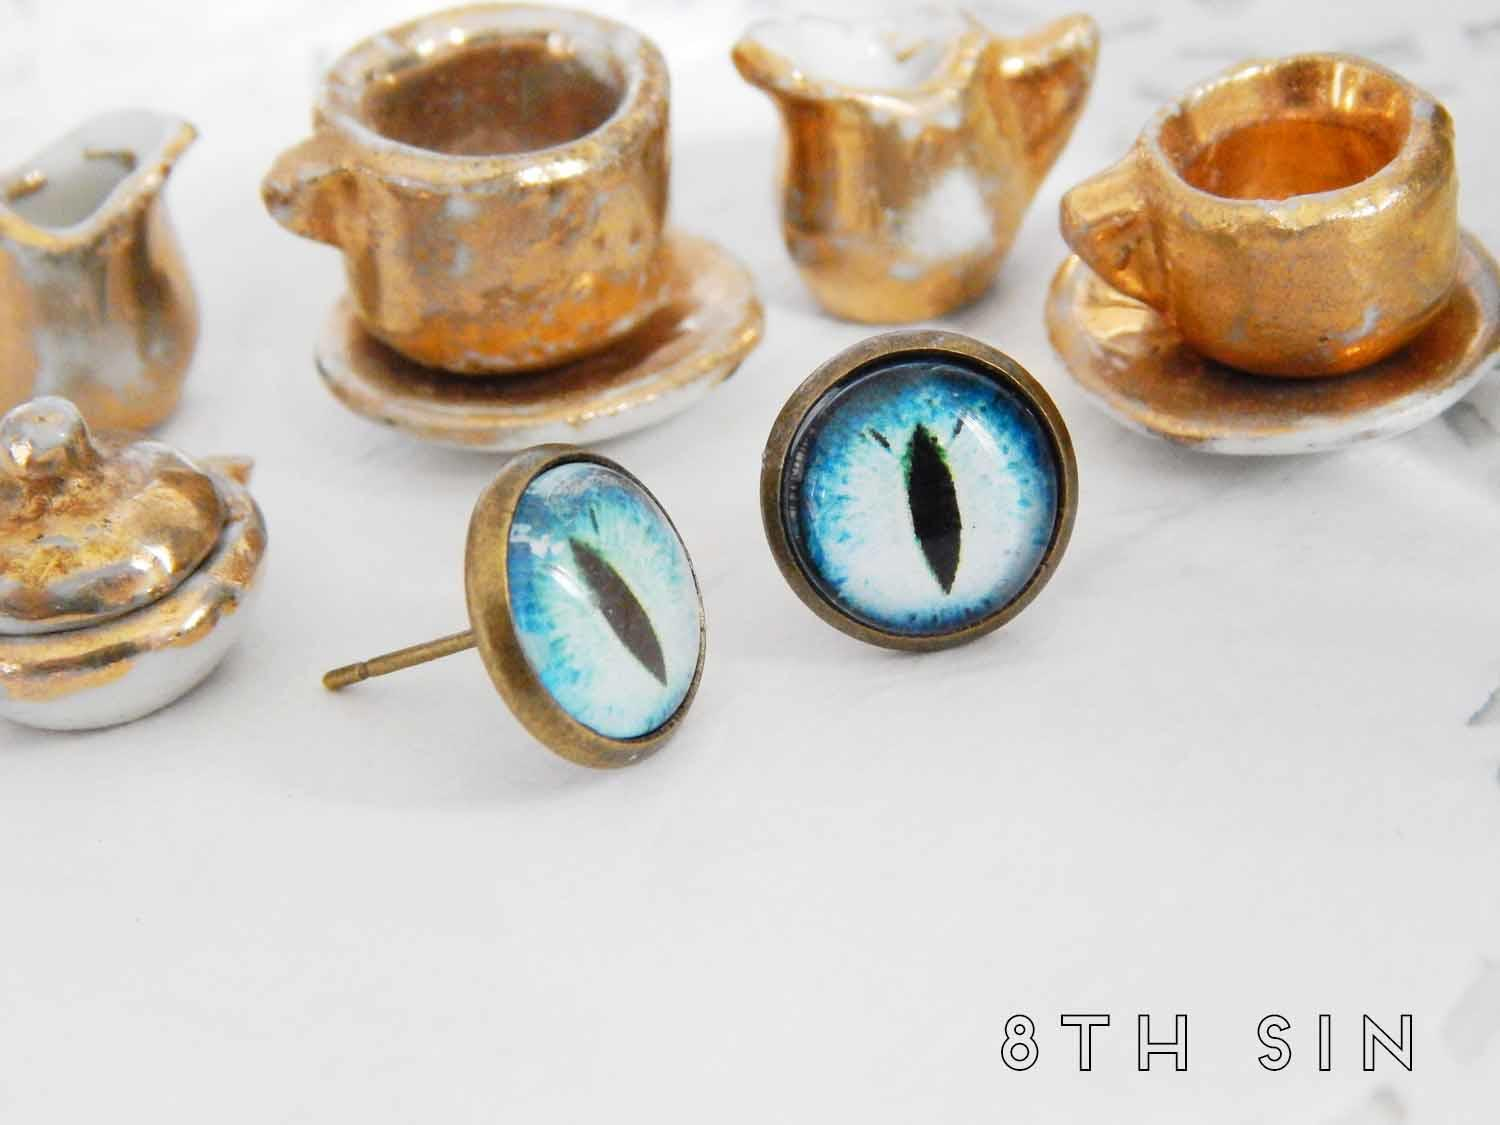 antique bronze and blue dragon eye stud earrings